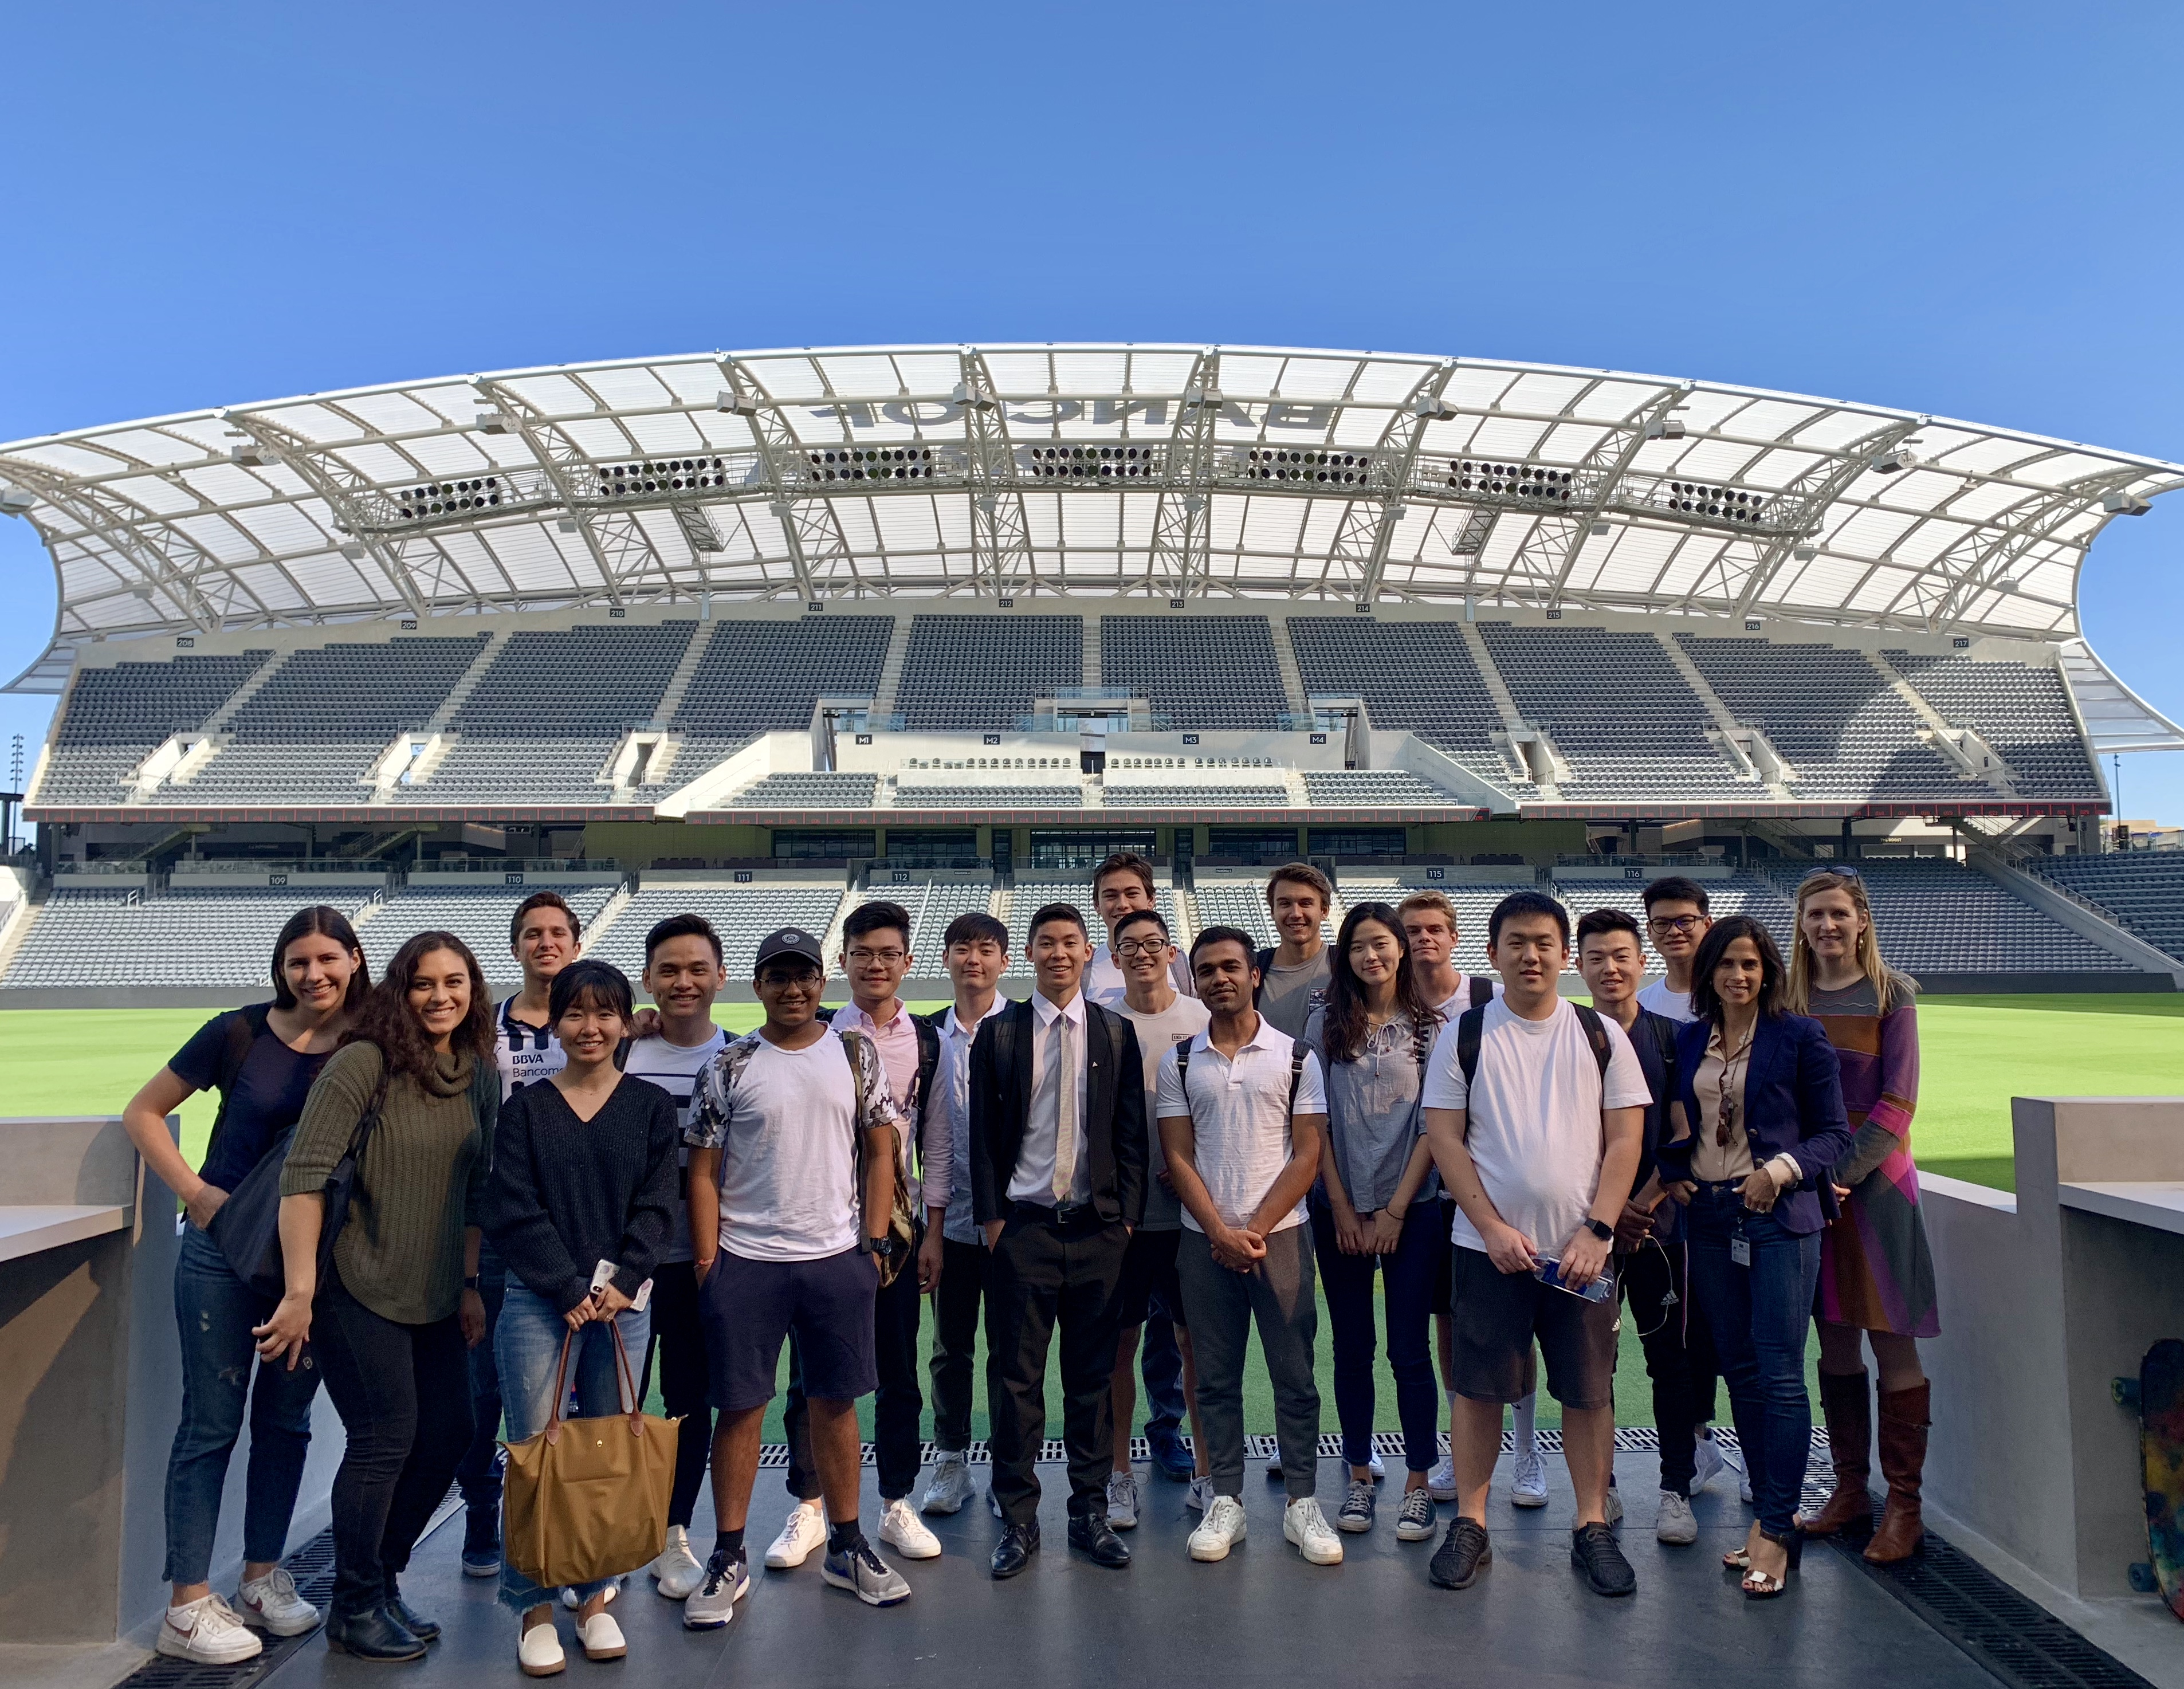 Professor Jaconi visiting LAFC with students from ACCT/BUAD 380x Introduction to Enterprise Risk Management